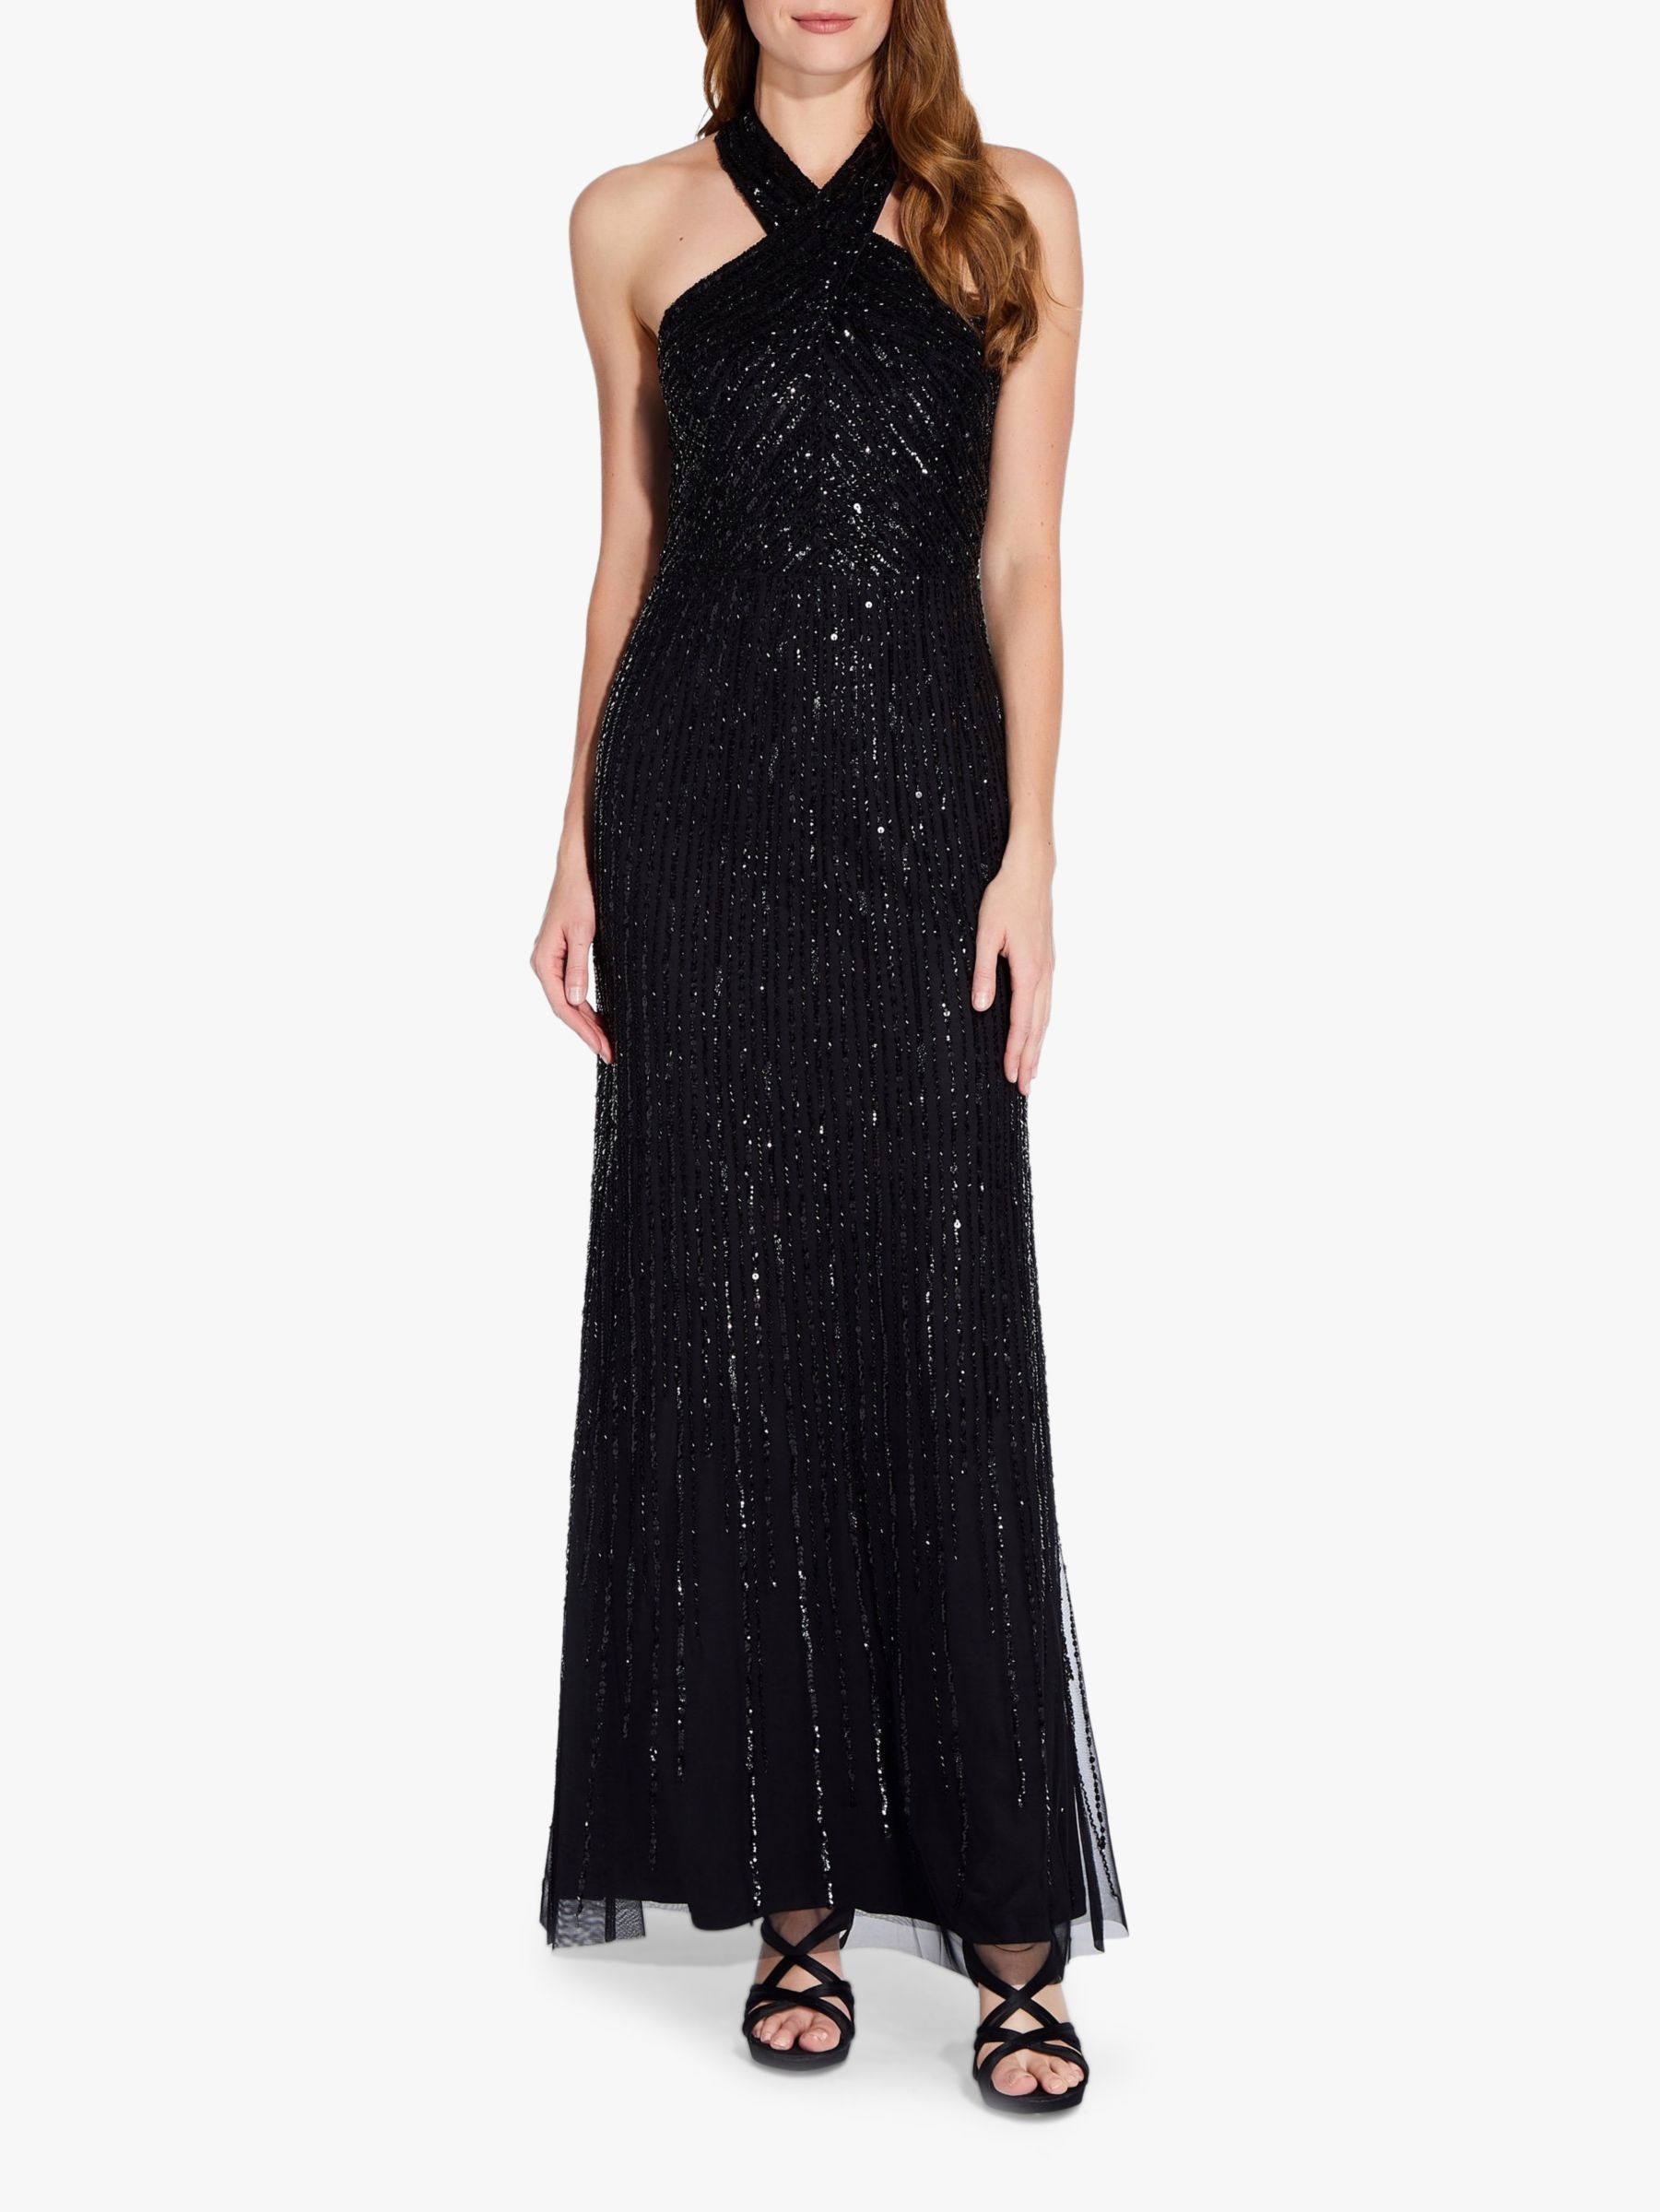 Adrianna Papell Adrianna Papell Halterneck Beaded Gown, Black